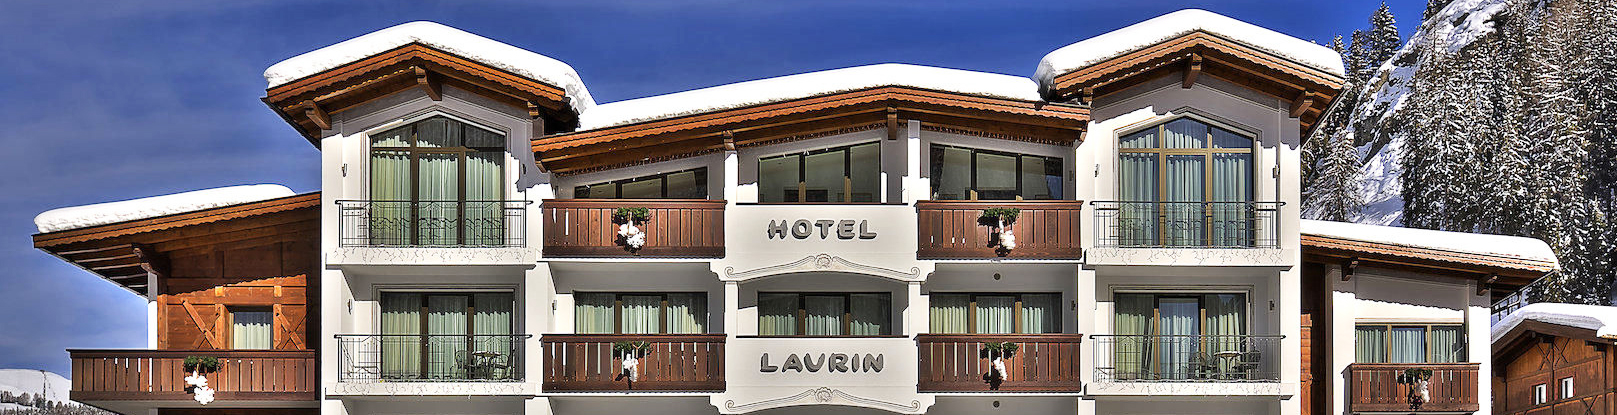 hotel-laurin-4